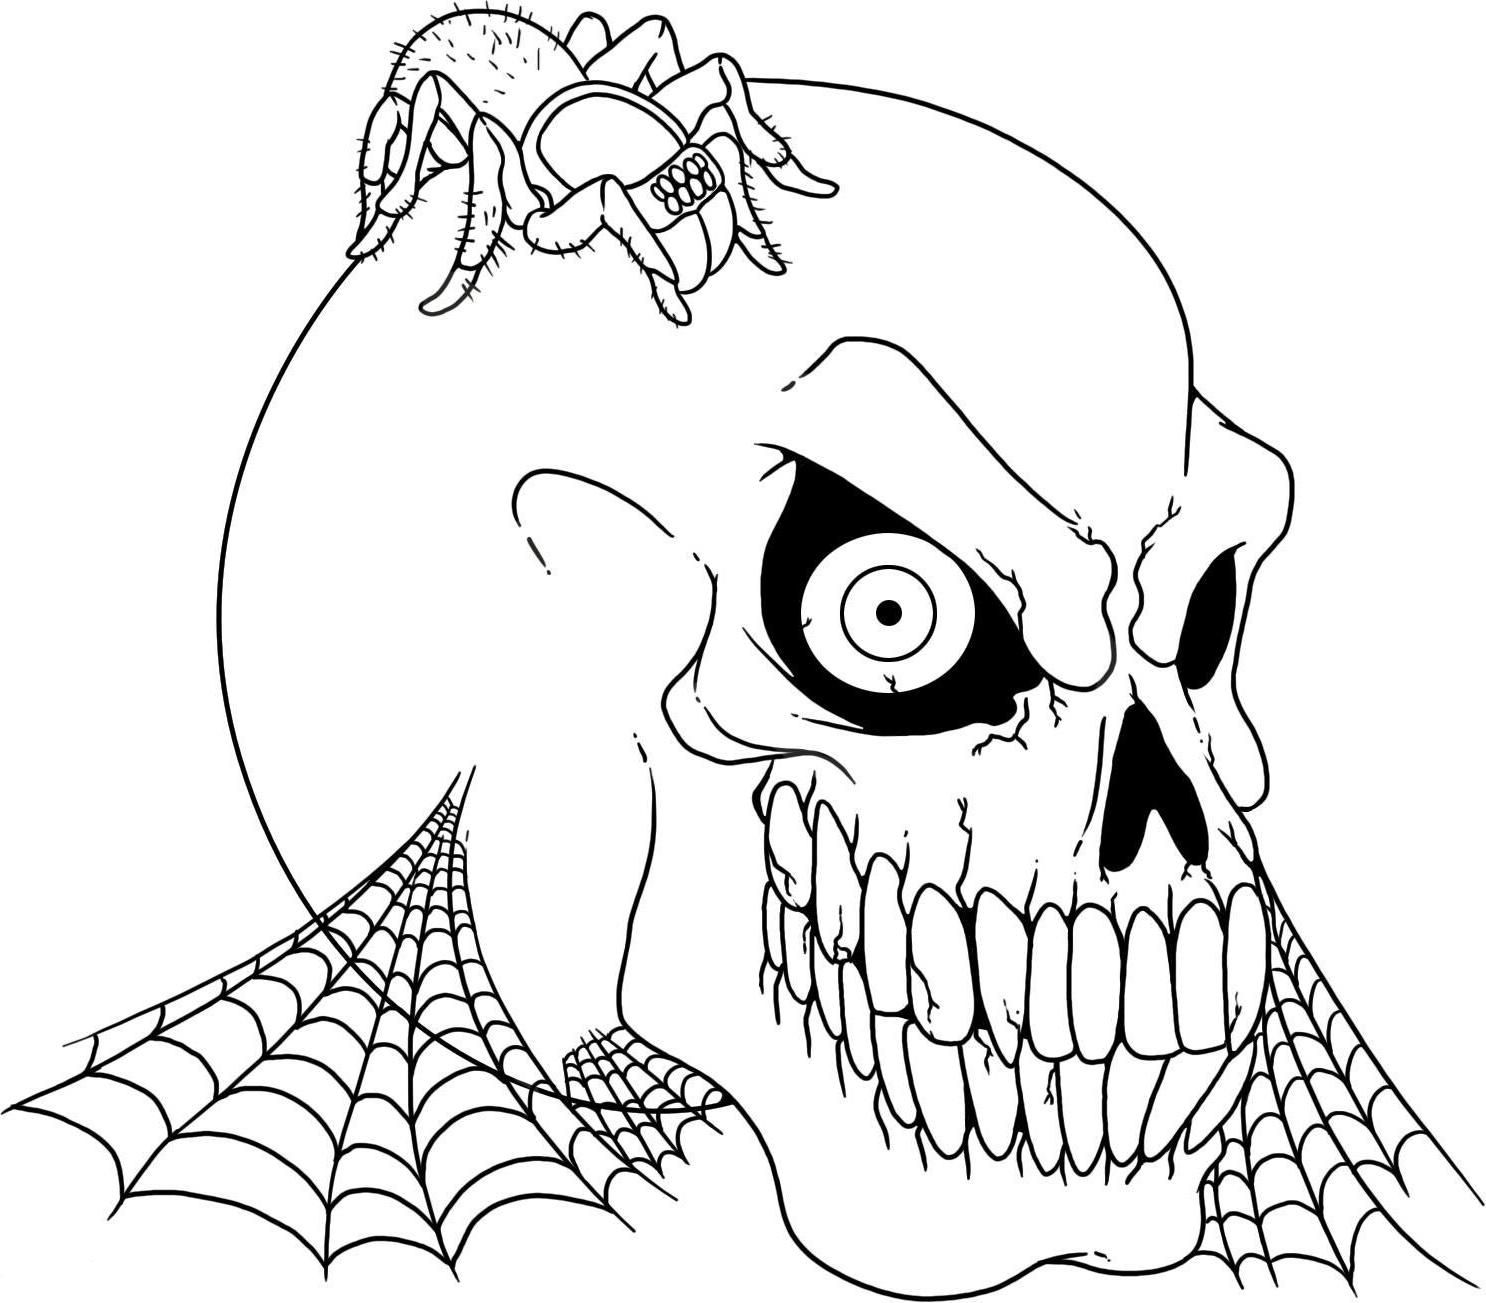 1486x1303 Scary Halloween Skulls Coloring Pages Halloween Coloring Pages